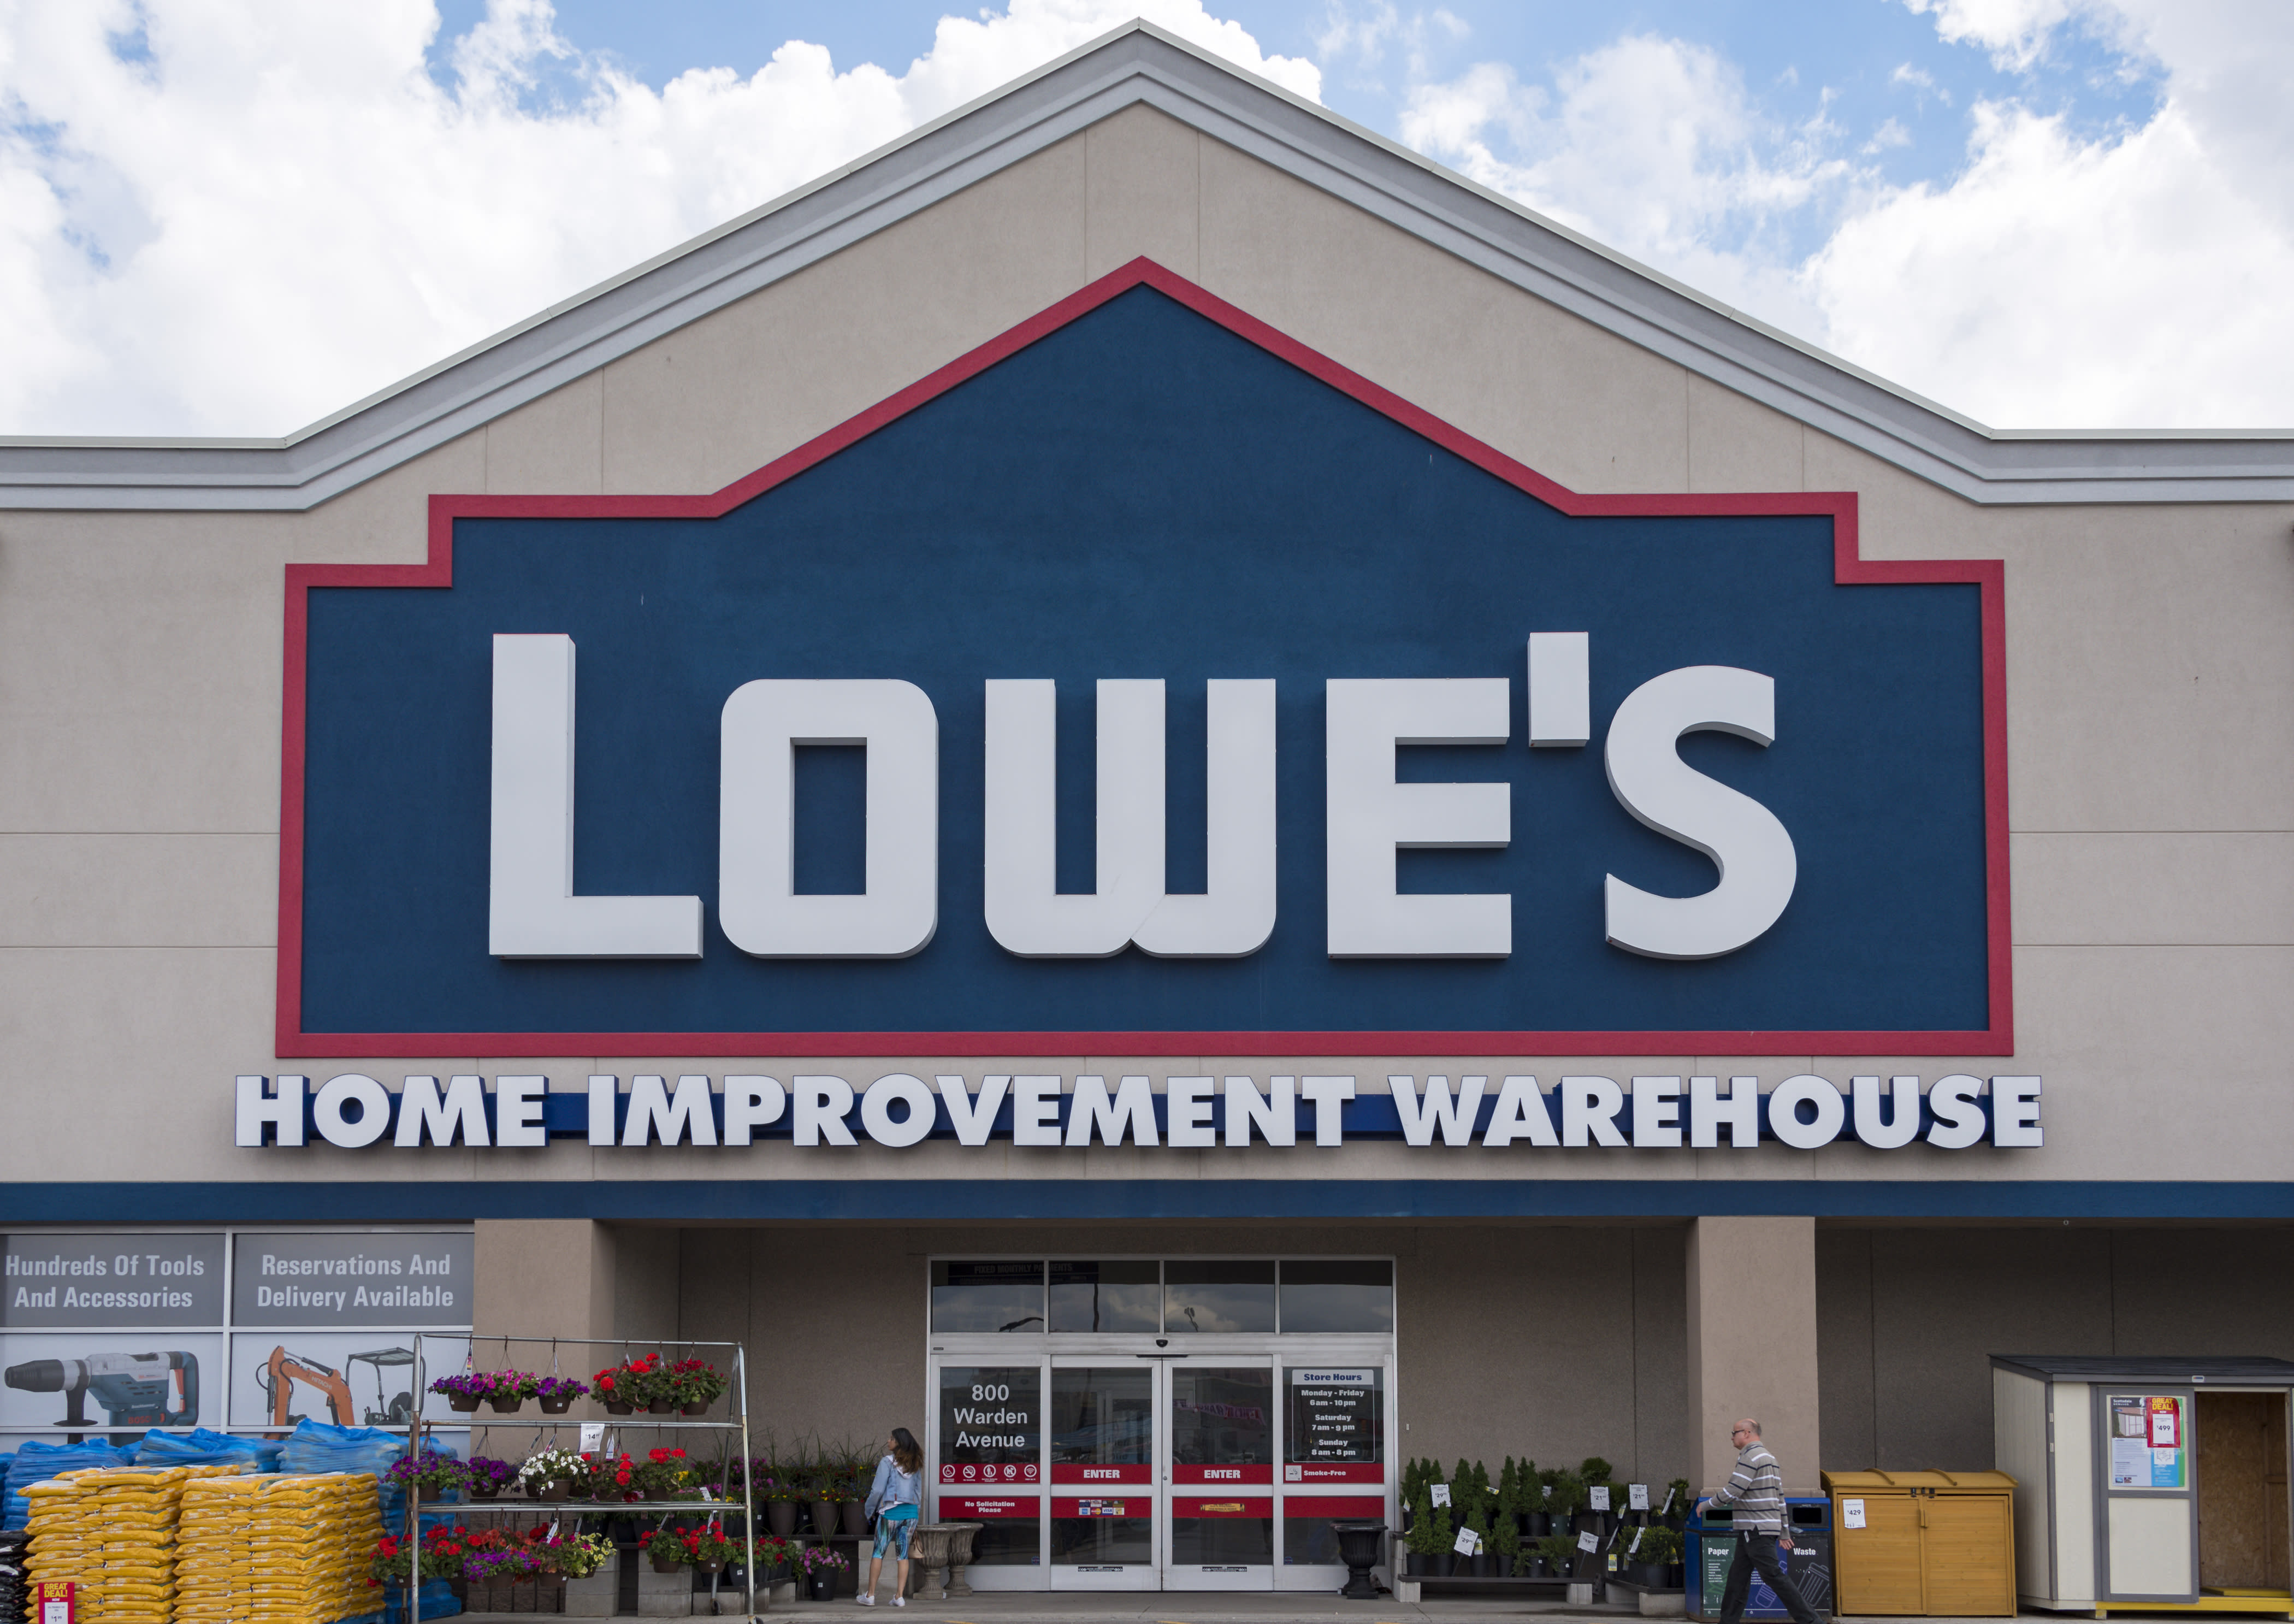 Earnings Lowes Stock Jumps Despite Lowering Guidance And Closing